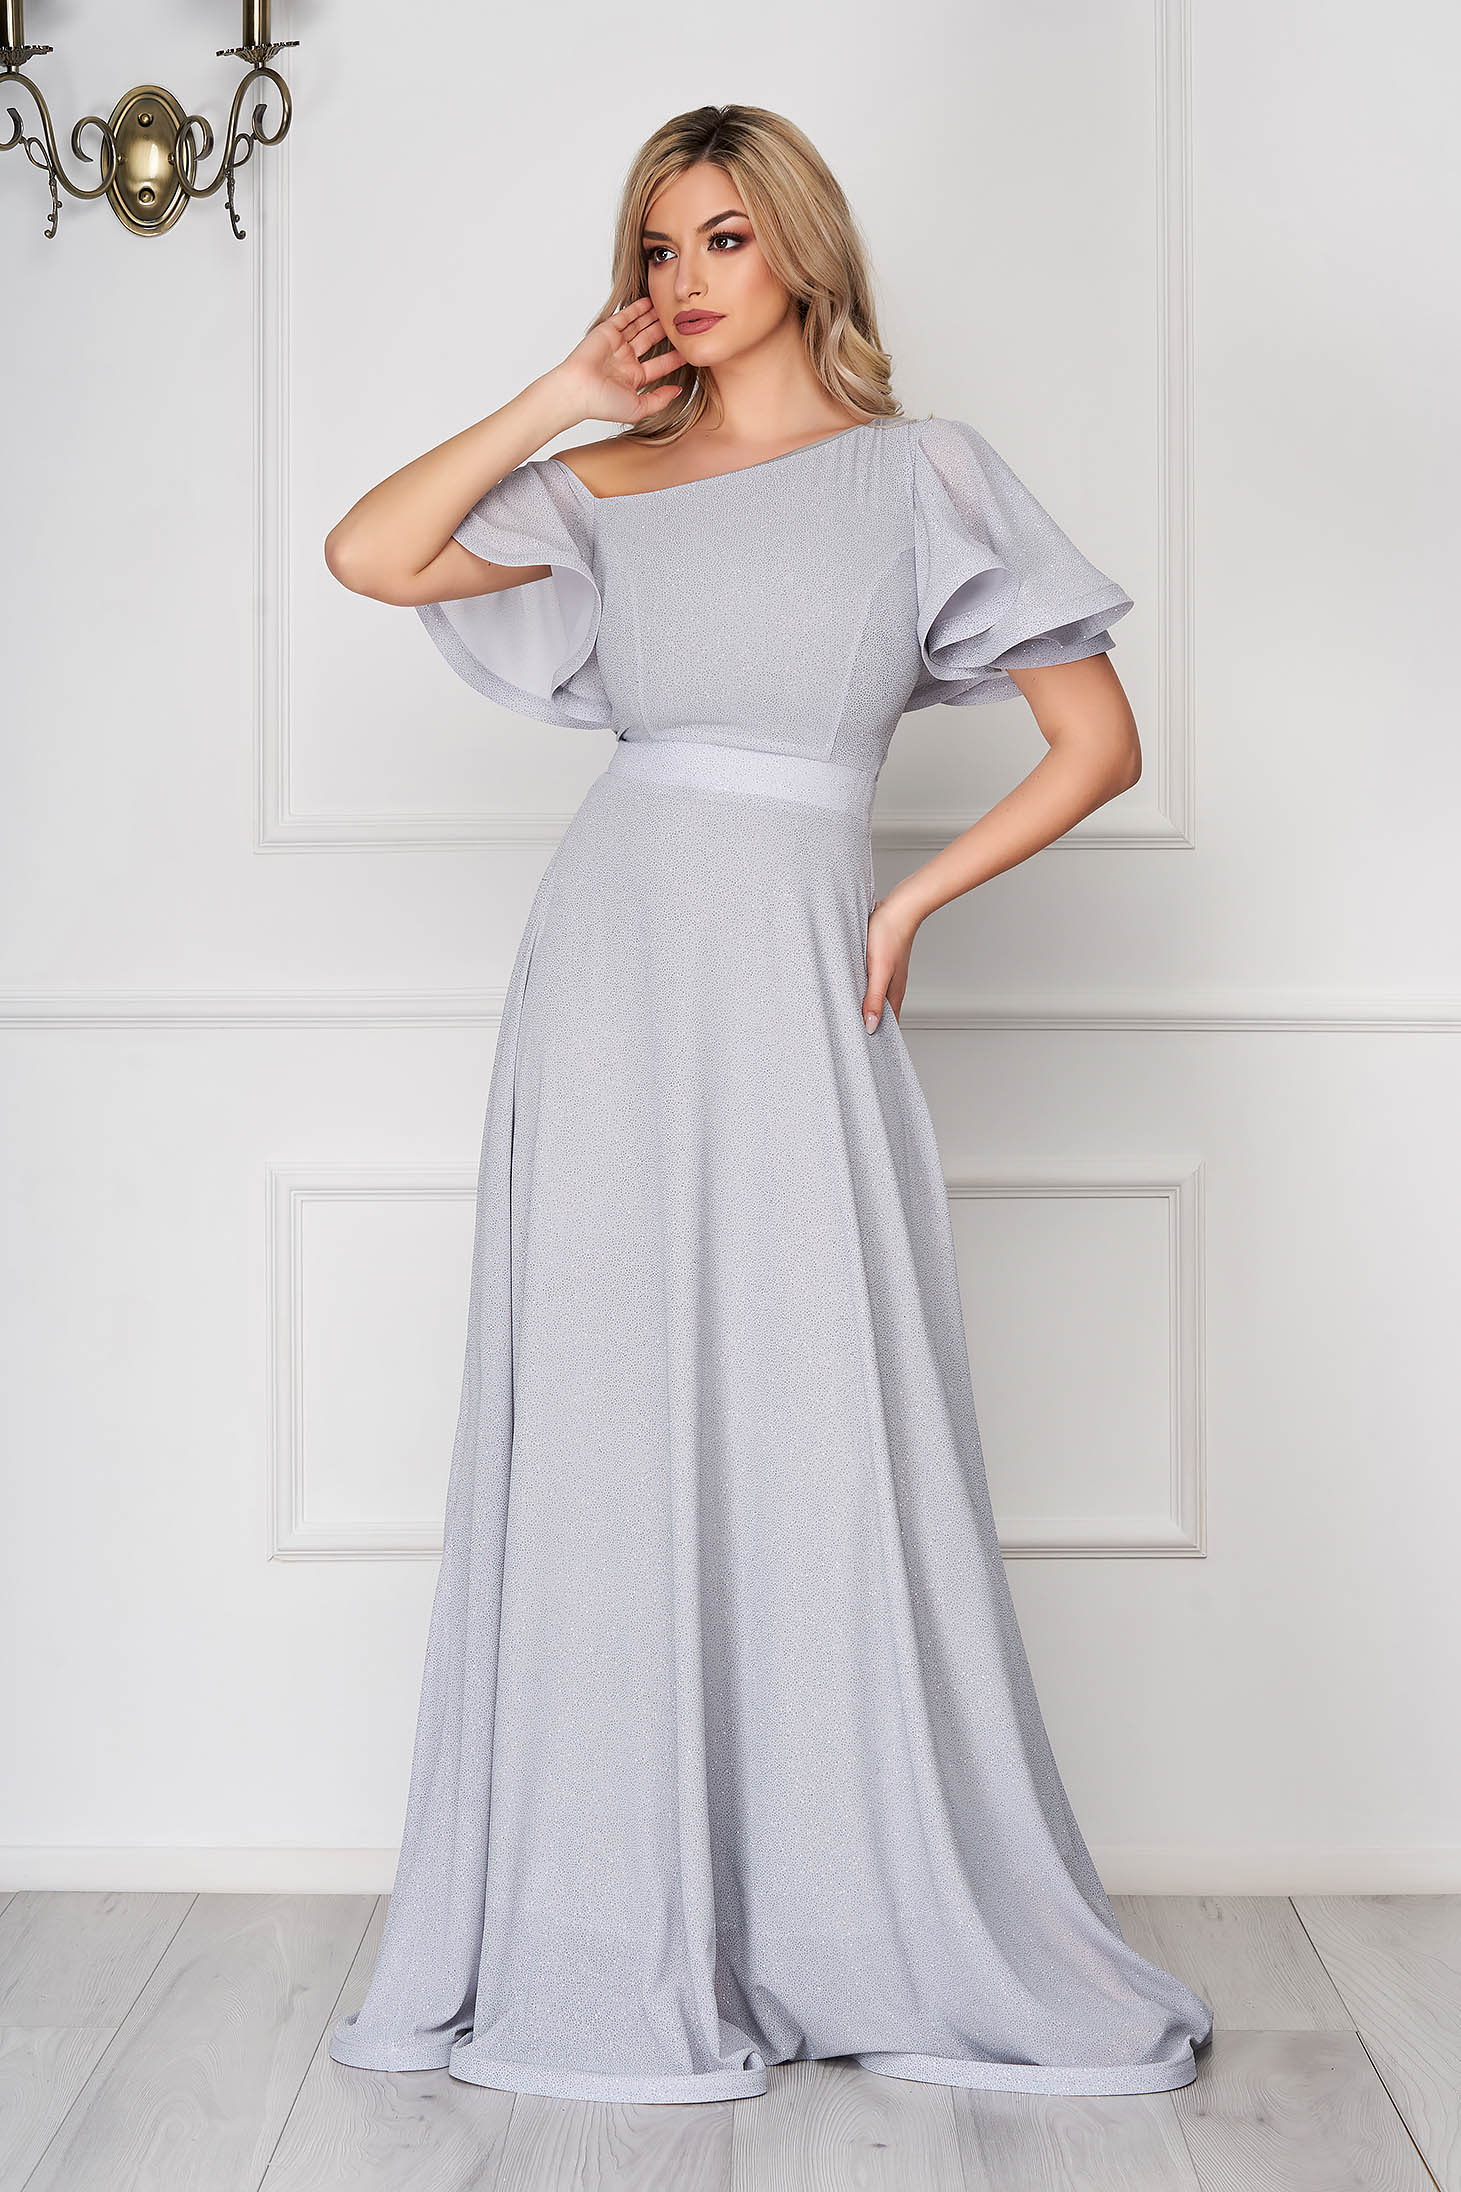 Dress StarShinerS grey long occasional cloche from veil fabric one shoulder